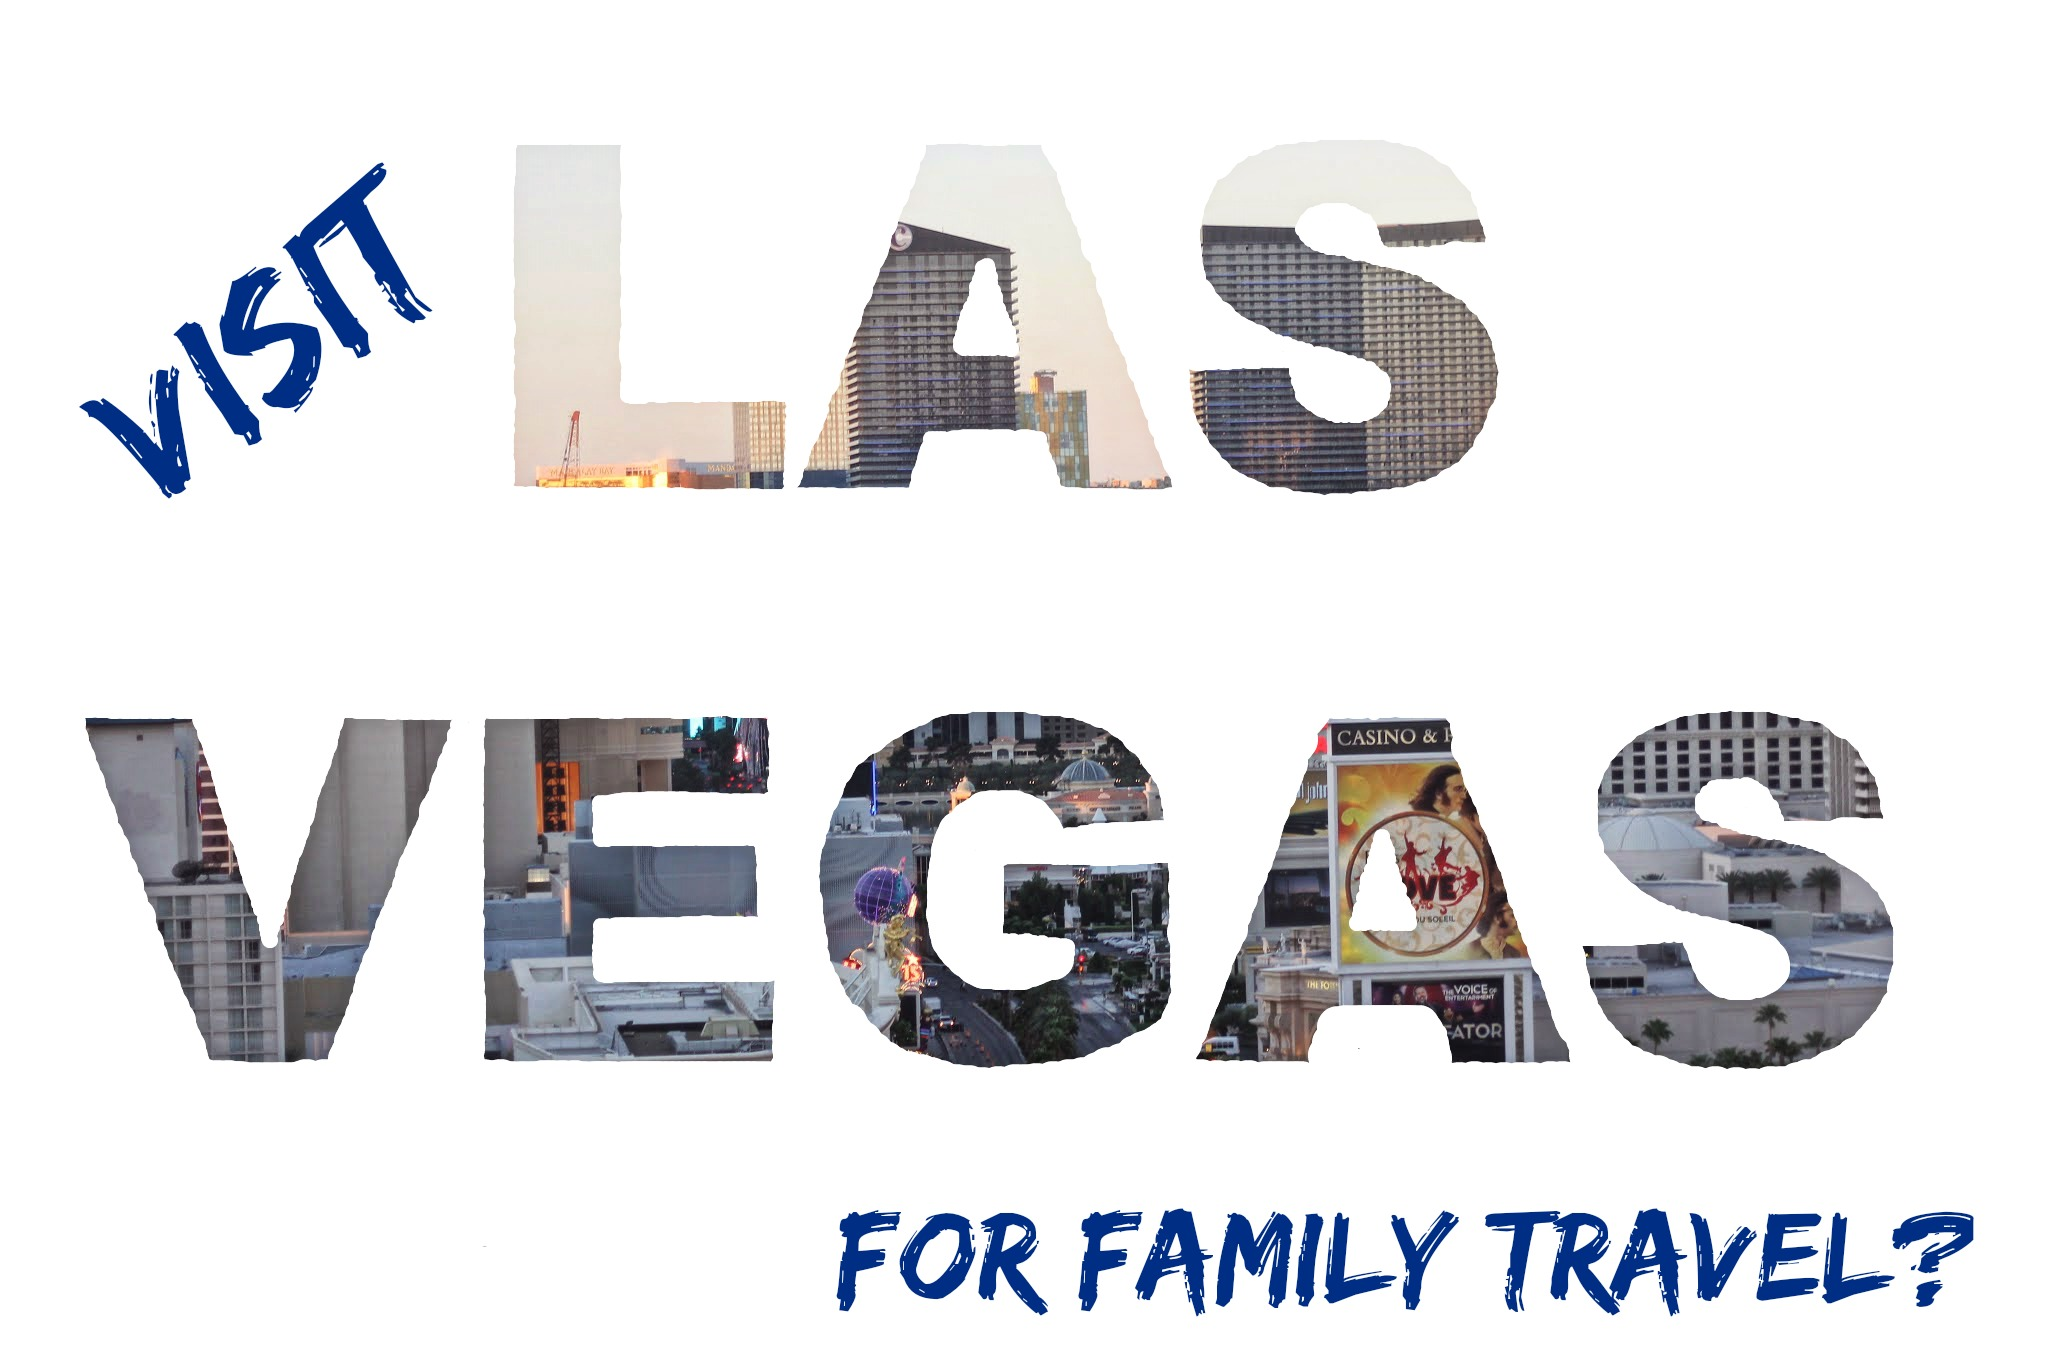 Visit Las Vegas for family travel?